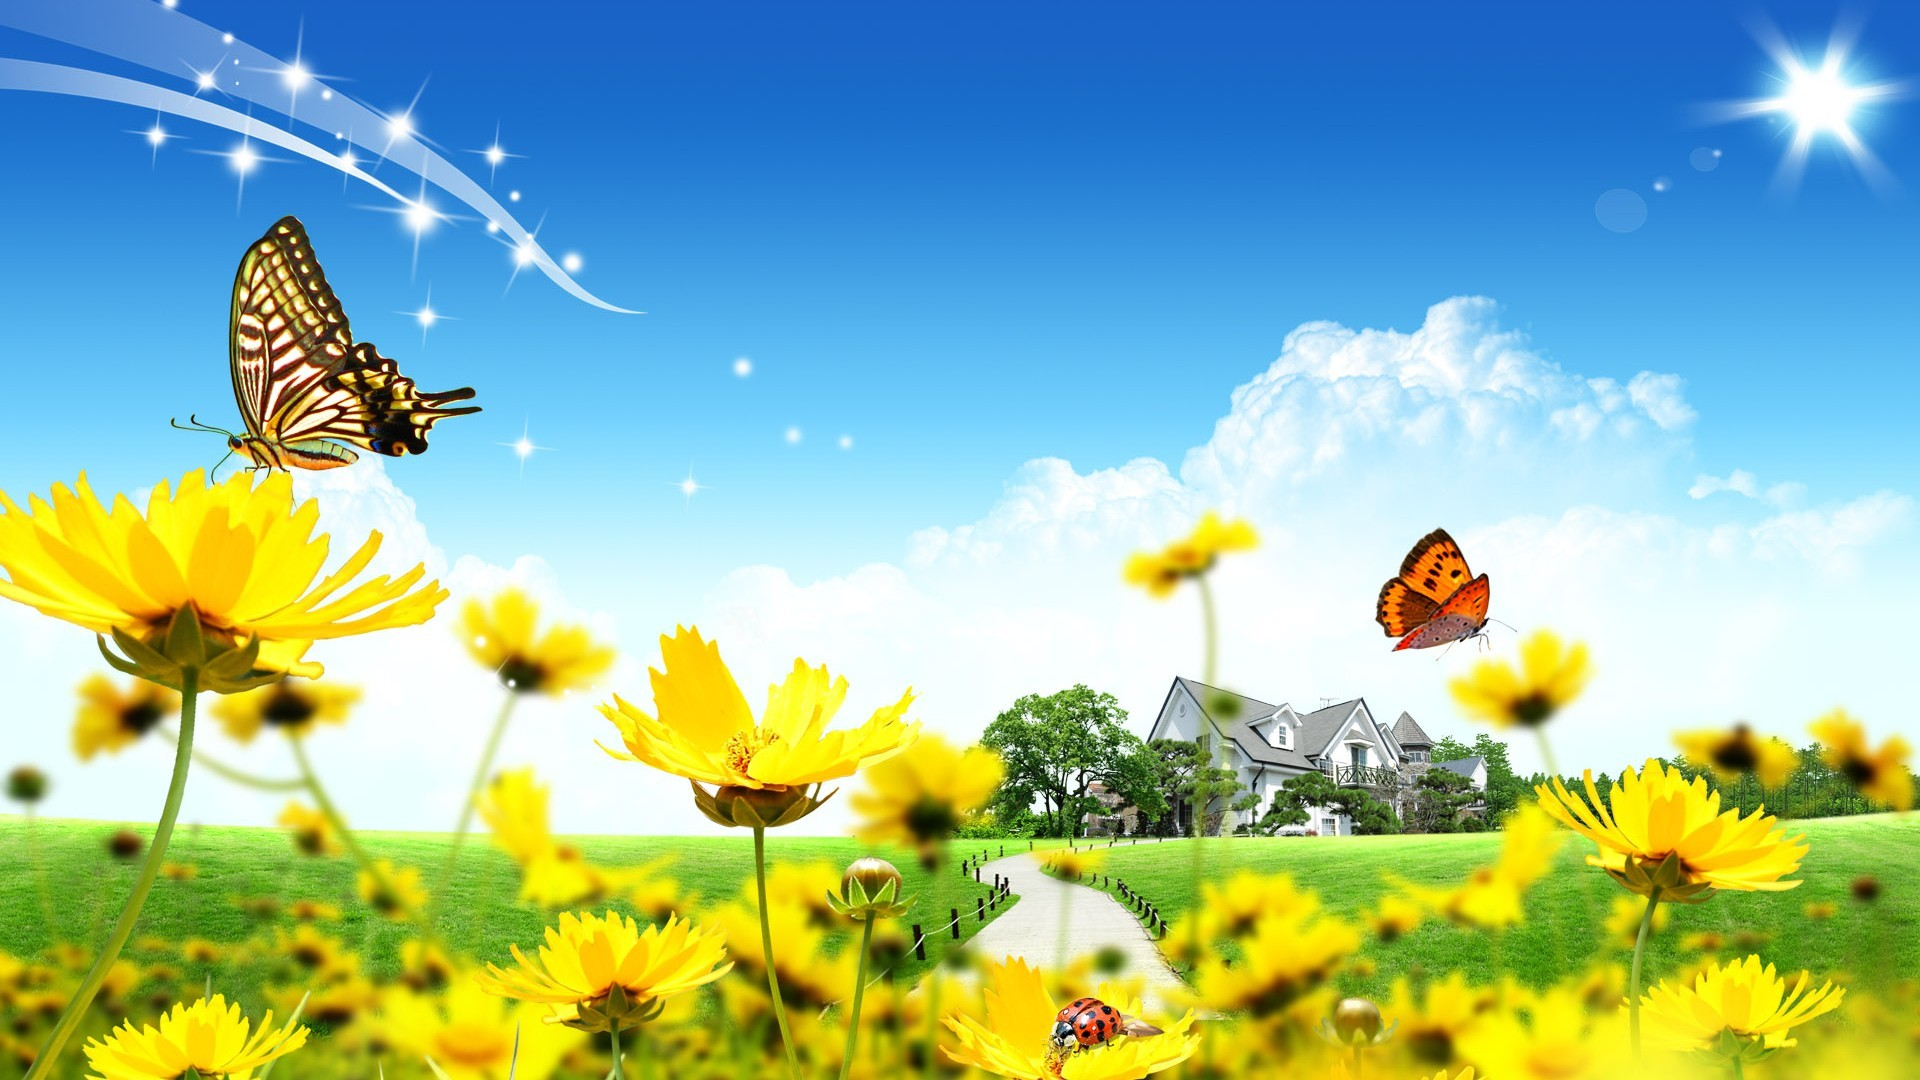 The Sunny Spring Windows 8.1 Theme | All For Windows 10 Free HTML code